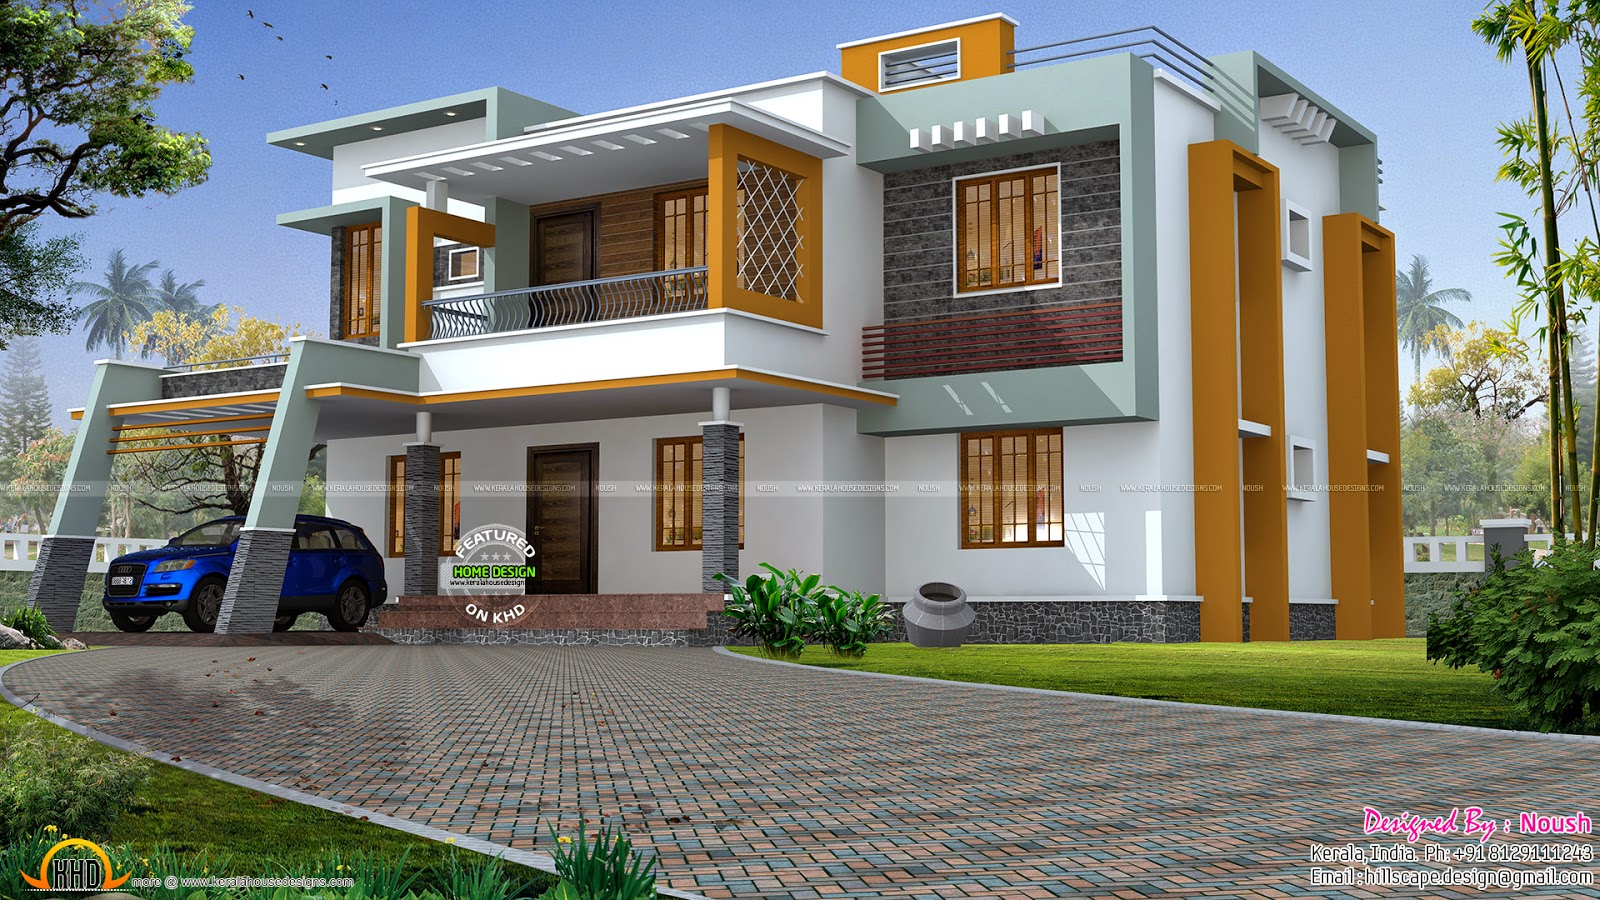 Box style house kerala home design and floor plans for Modern box house design